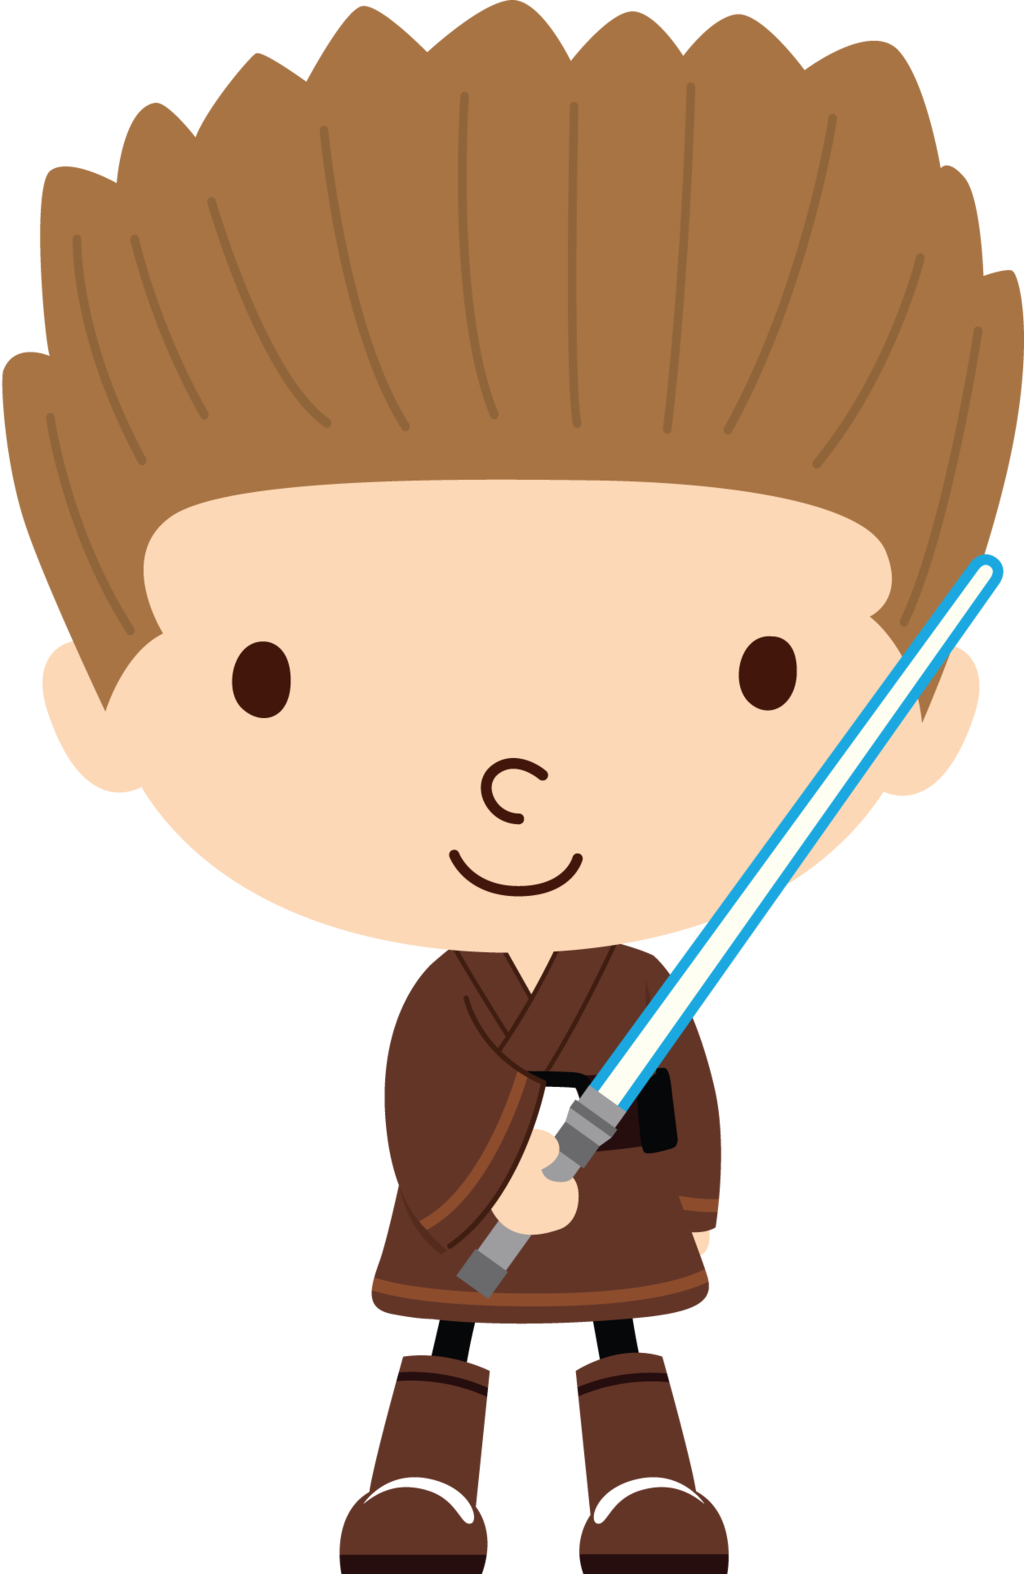 C po at getdrawings. Starwars clipart c3p0